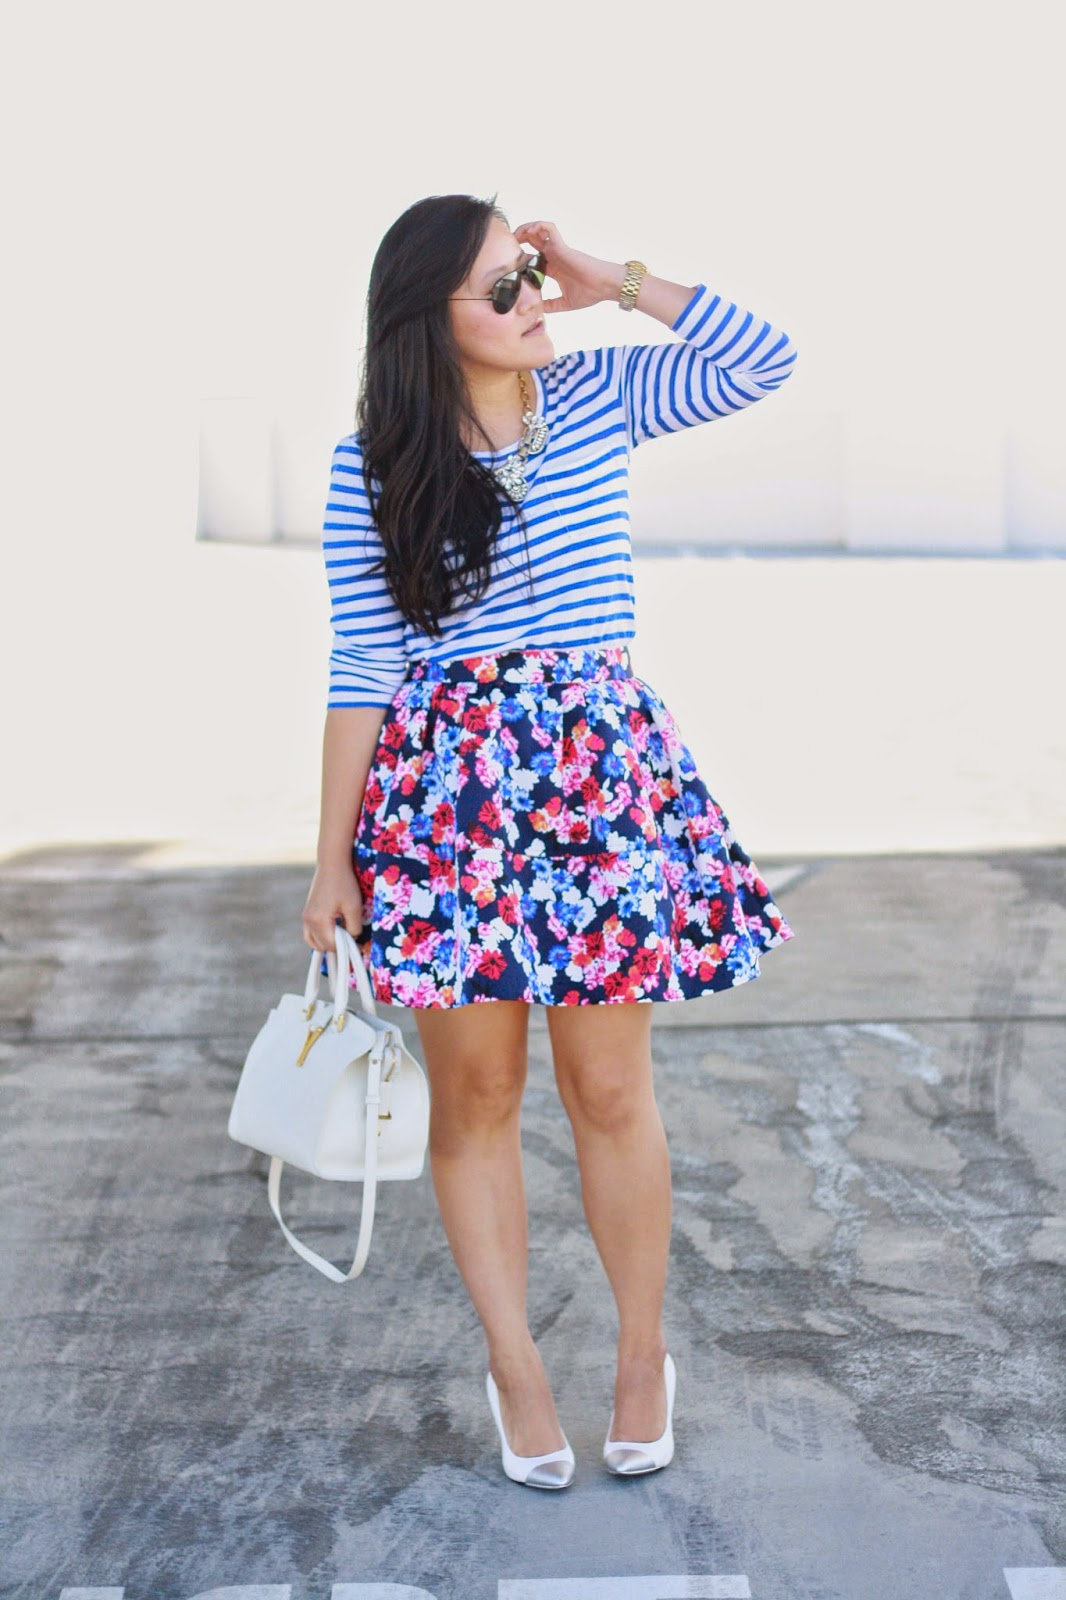 simplyxclassic, stripes and florals, prints, jcrew top, express skirt, ray ban, jrew necklace, diy heels, ysl, saint laurent cabas, blogger, ootd, california blogger,